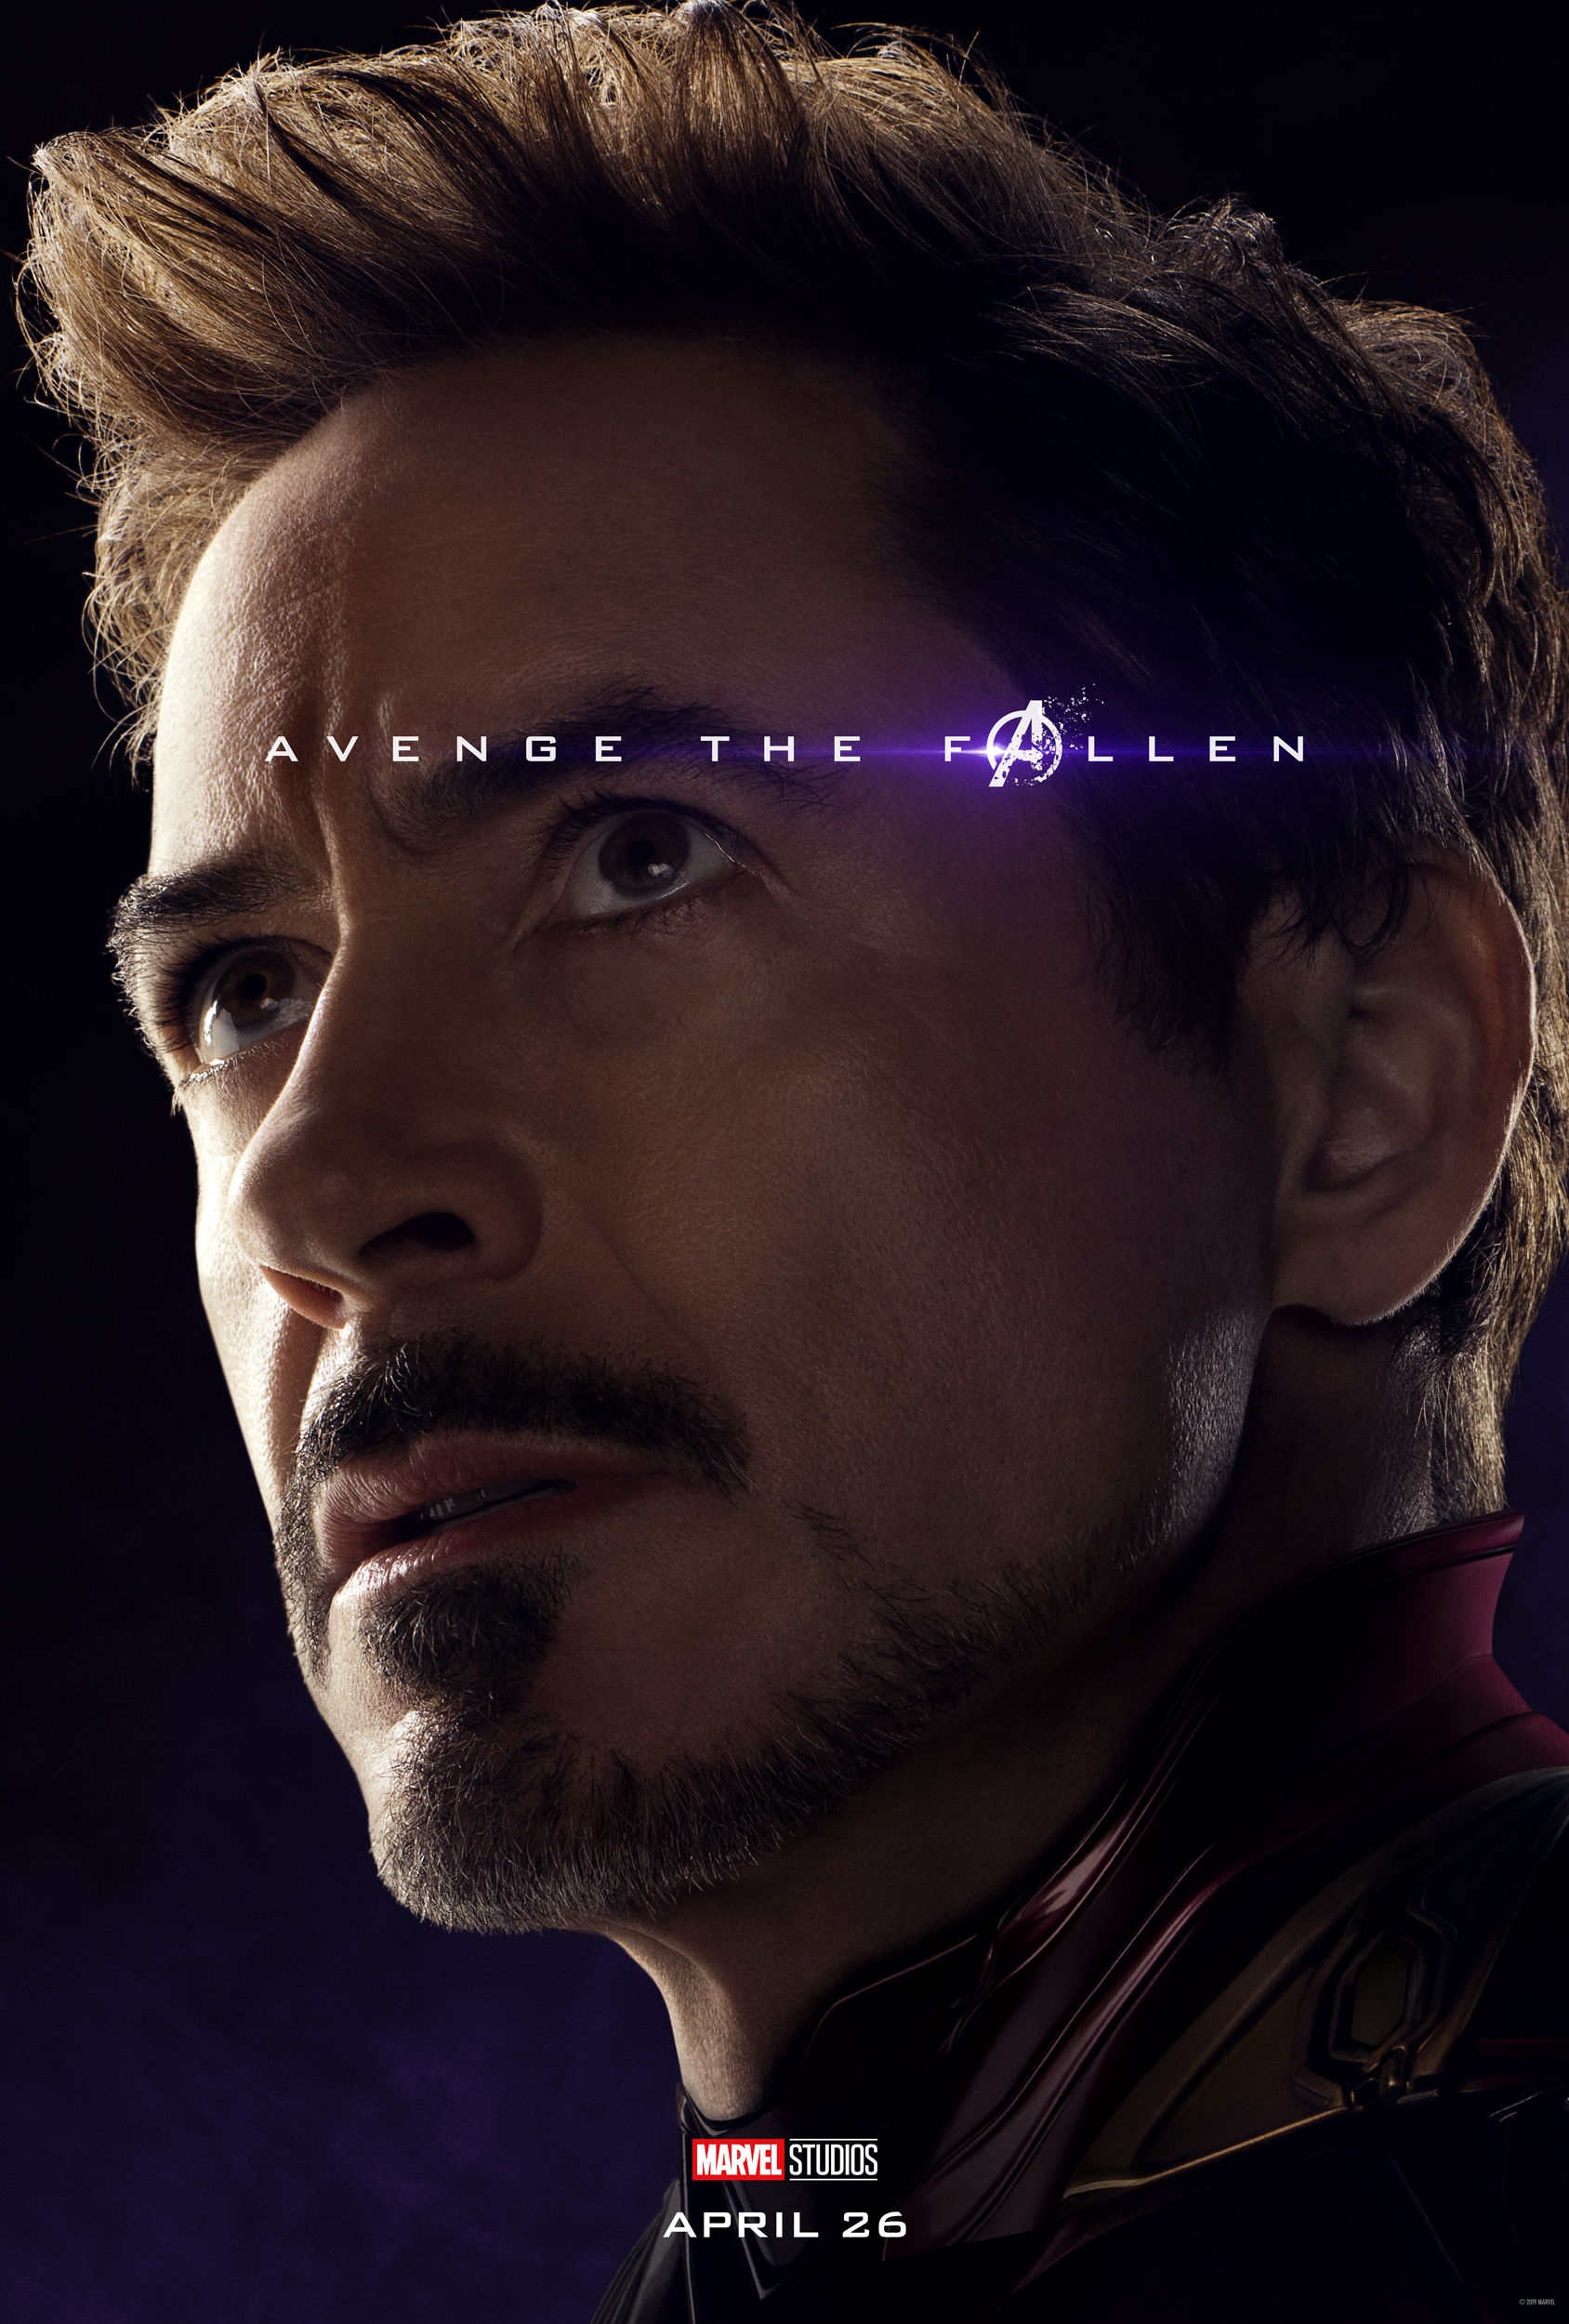 New Avengers Endgame Posters And Featurette Released Allears Net